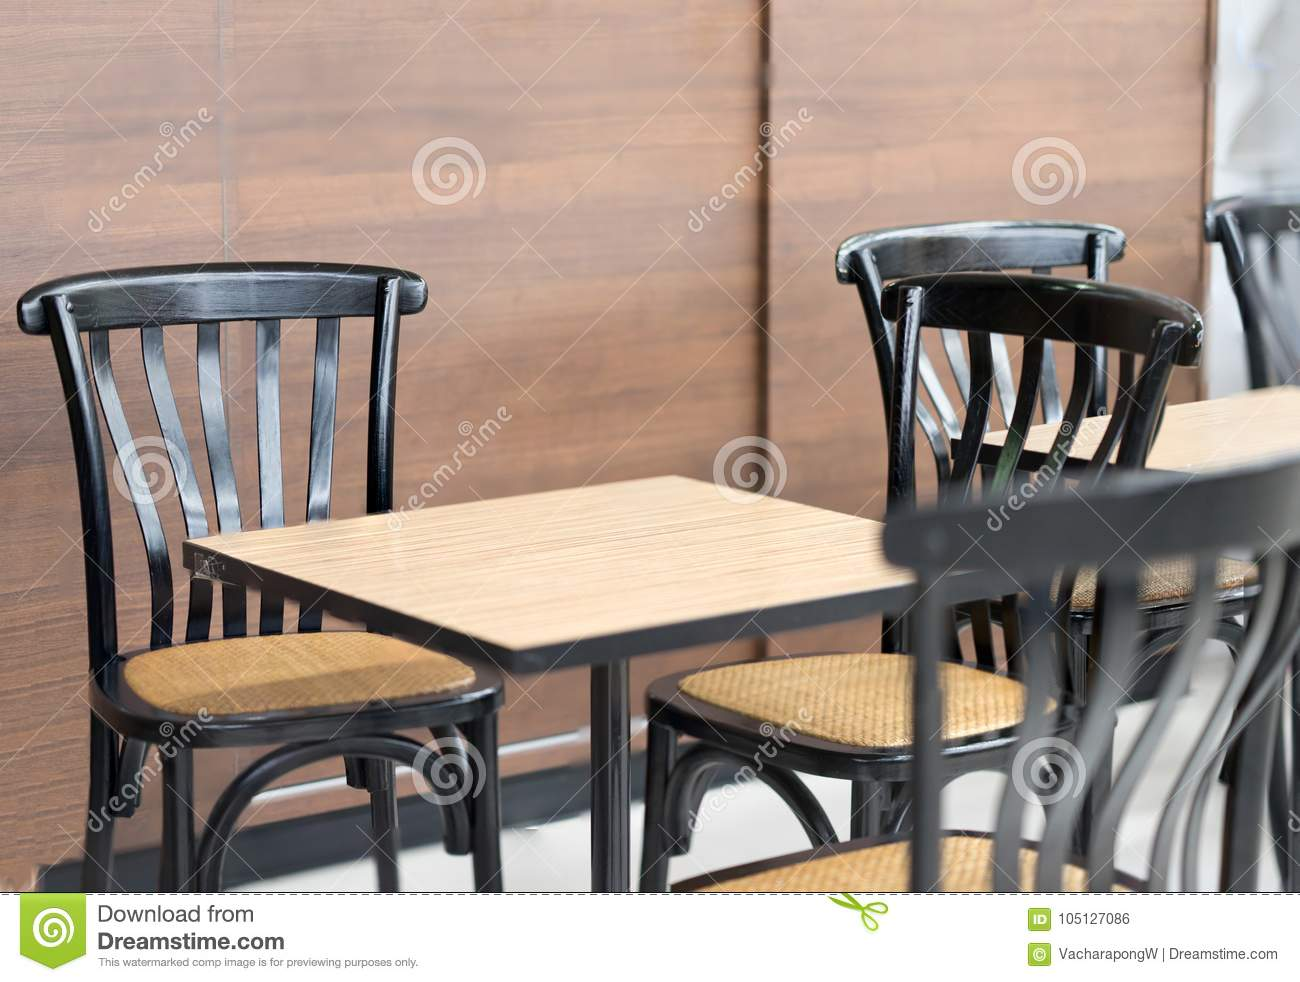 Modern Tables And Chairs In Coffee Shop Or Bekery Store Stock Photo Image Of Restaurant Exterior 105127086